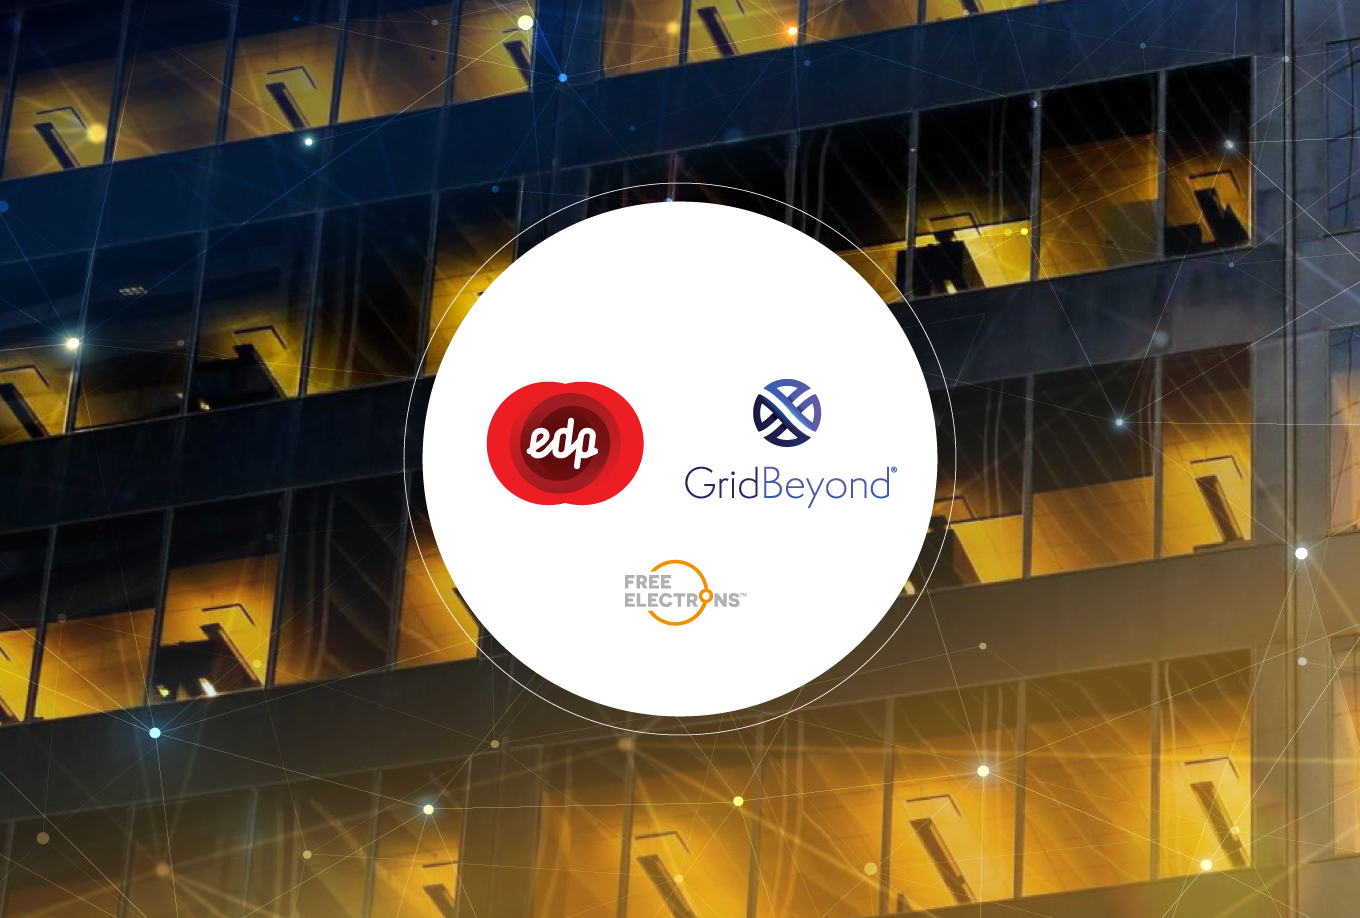 EDP invests €6 million in GridBeyond to grow in new ...